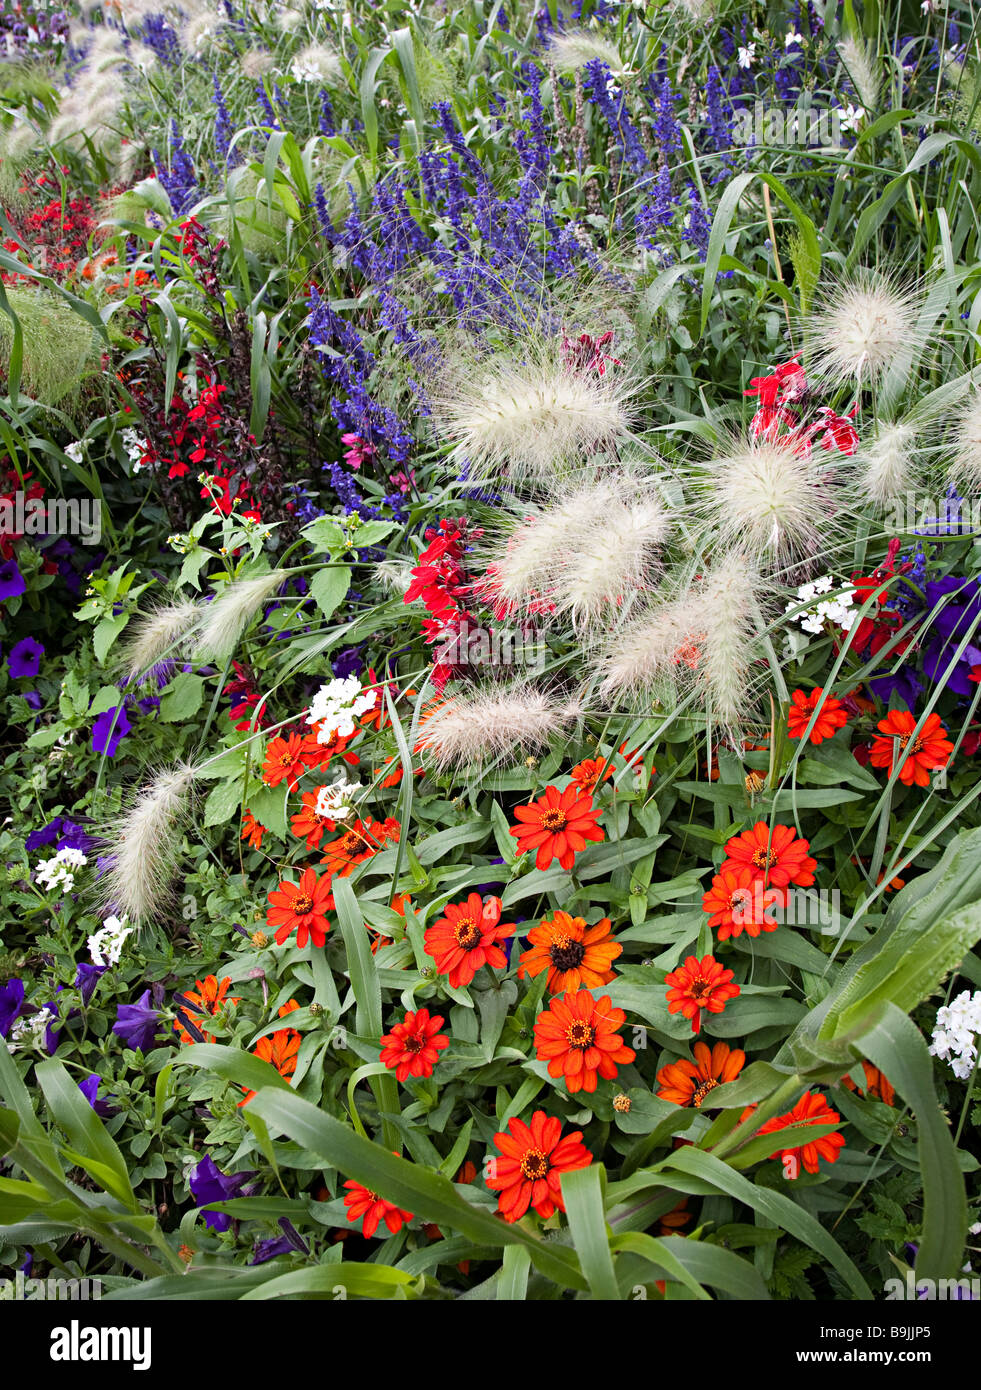 Mixed flowers in herbaceous border Germany - Stock Image